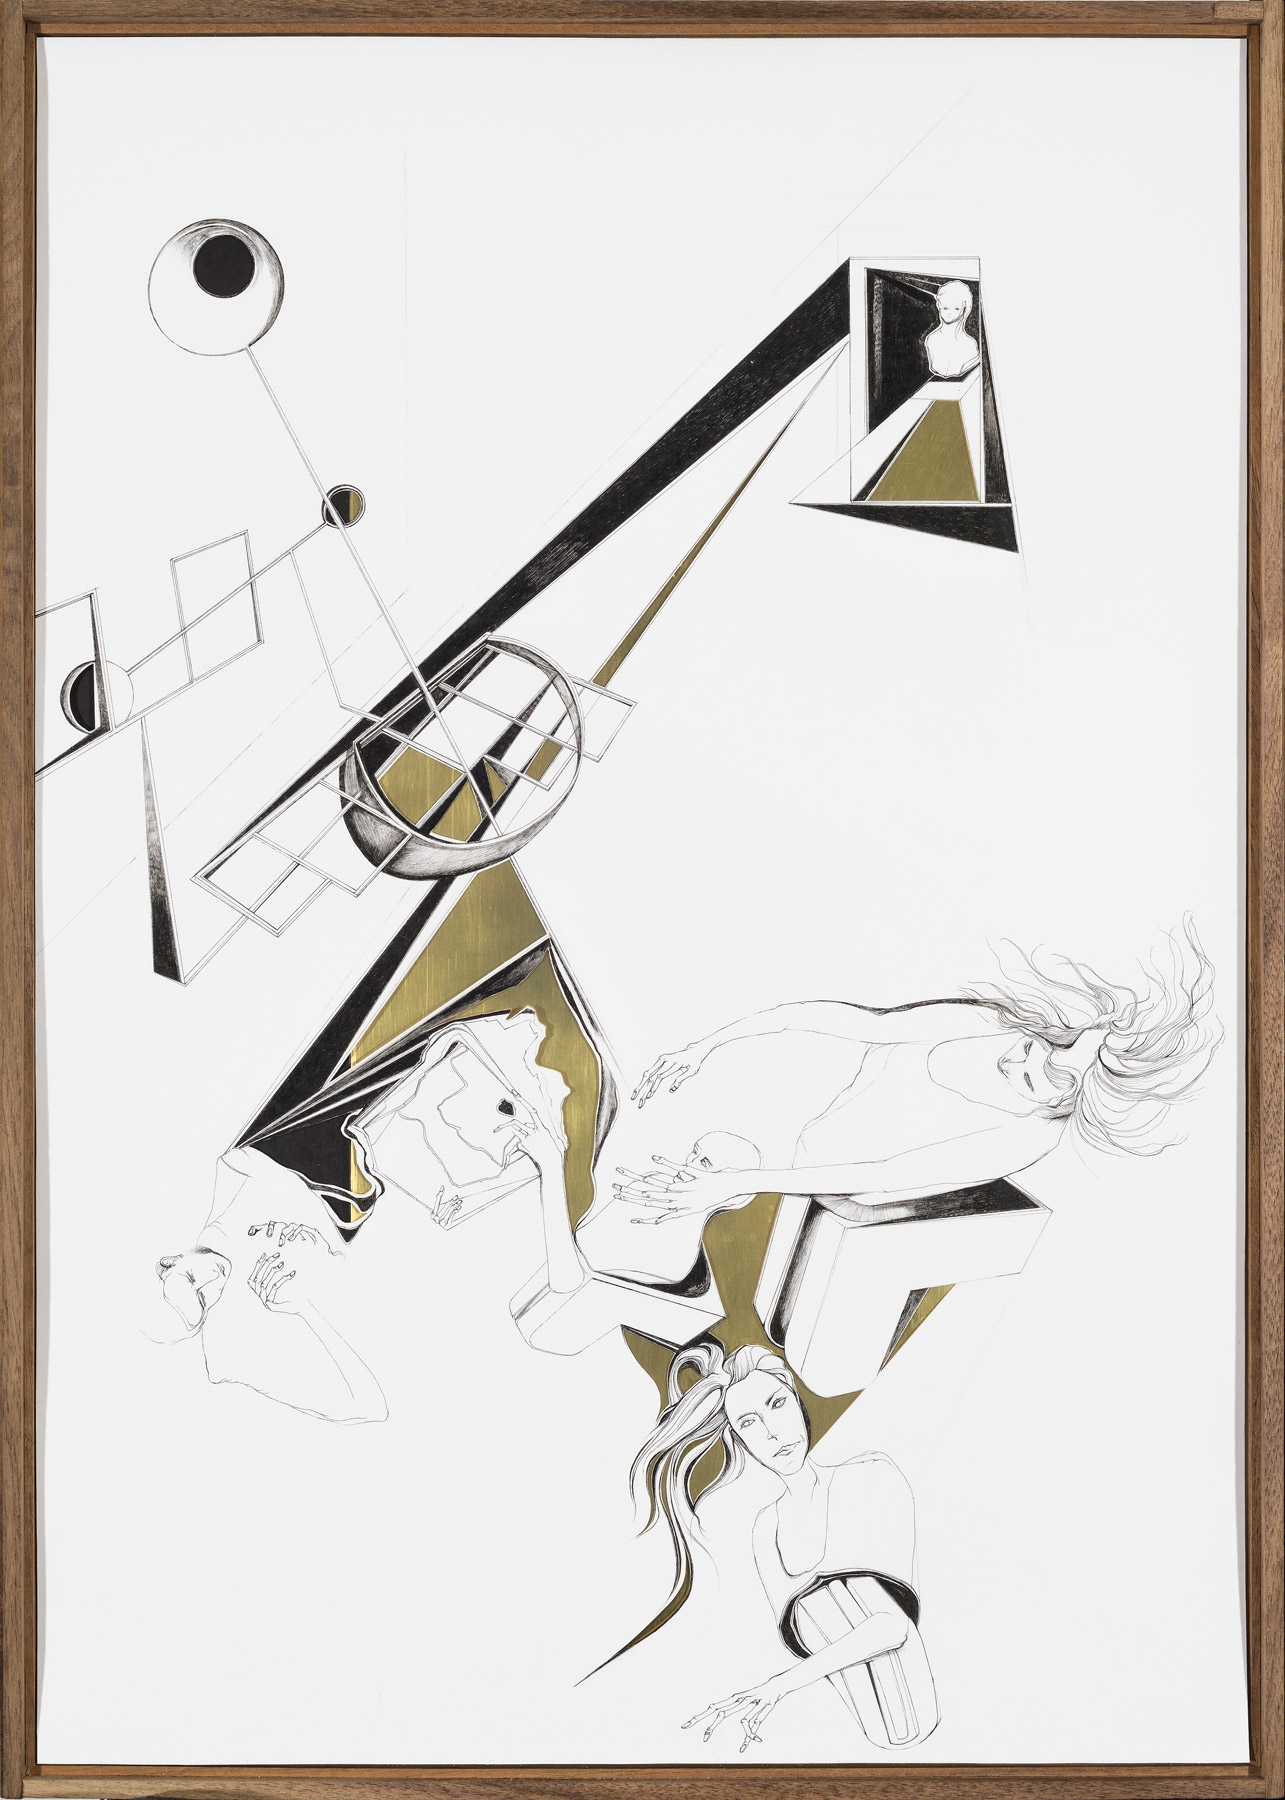 Nina Annabelle Märkl | Modell Nr. 3 | Ink and pencil on paper, cut outs, brass, black paper | 69 x 42 cm | 2014 | photo: Walter Bayer